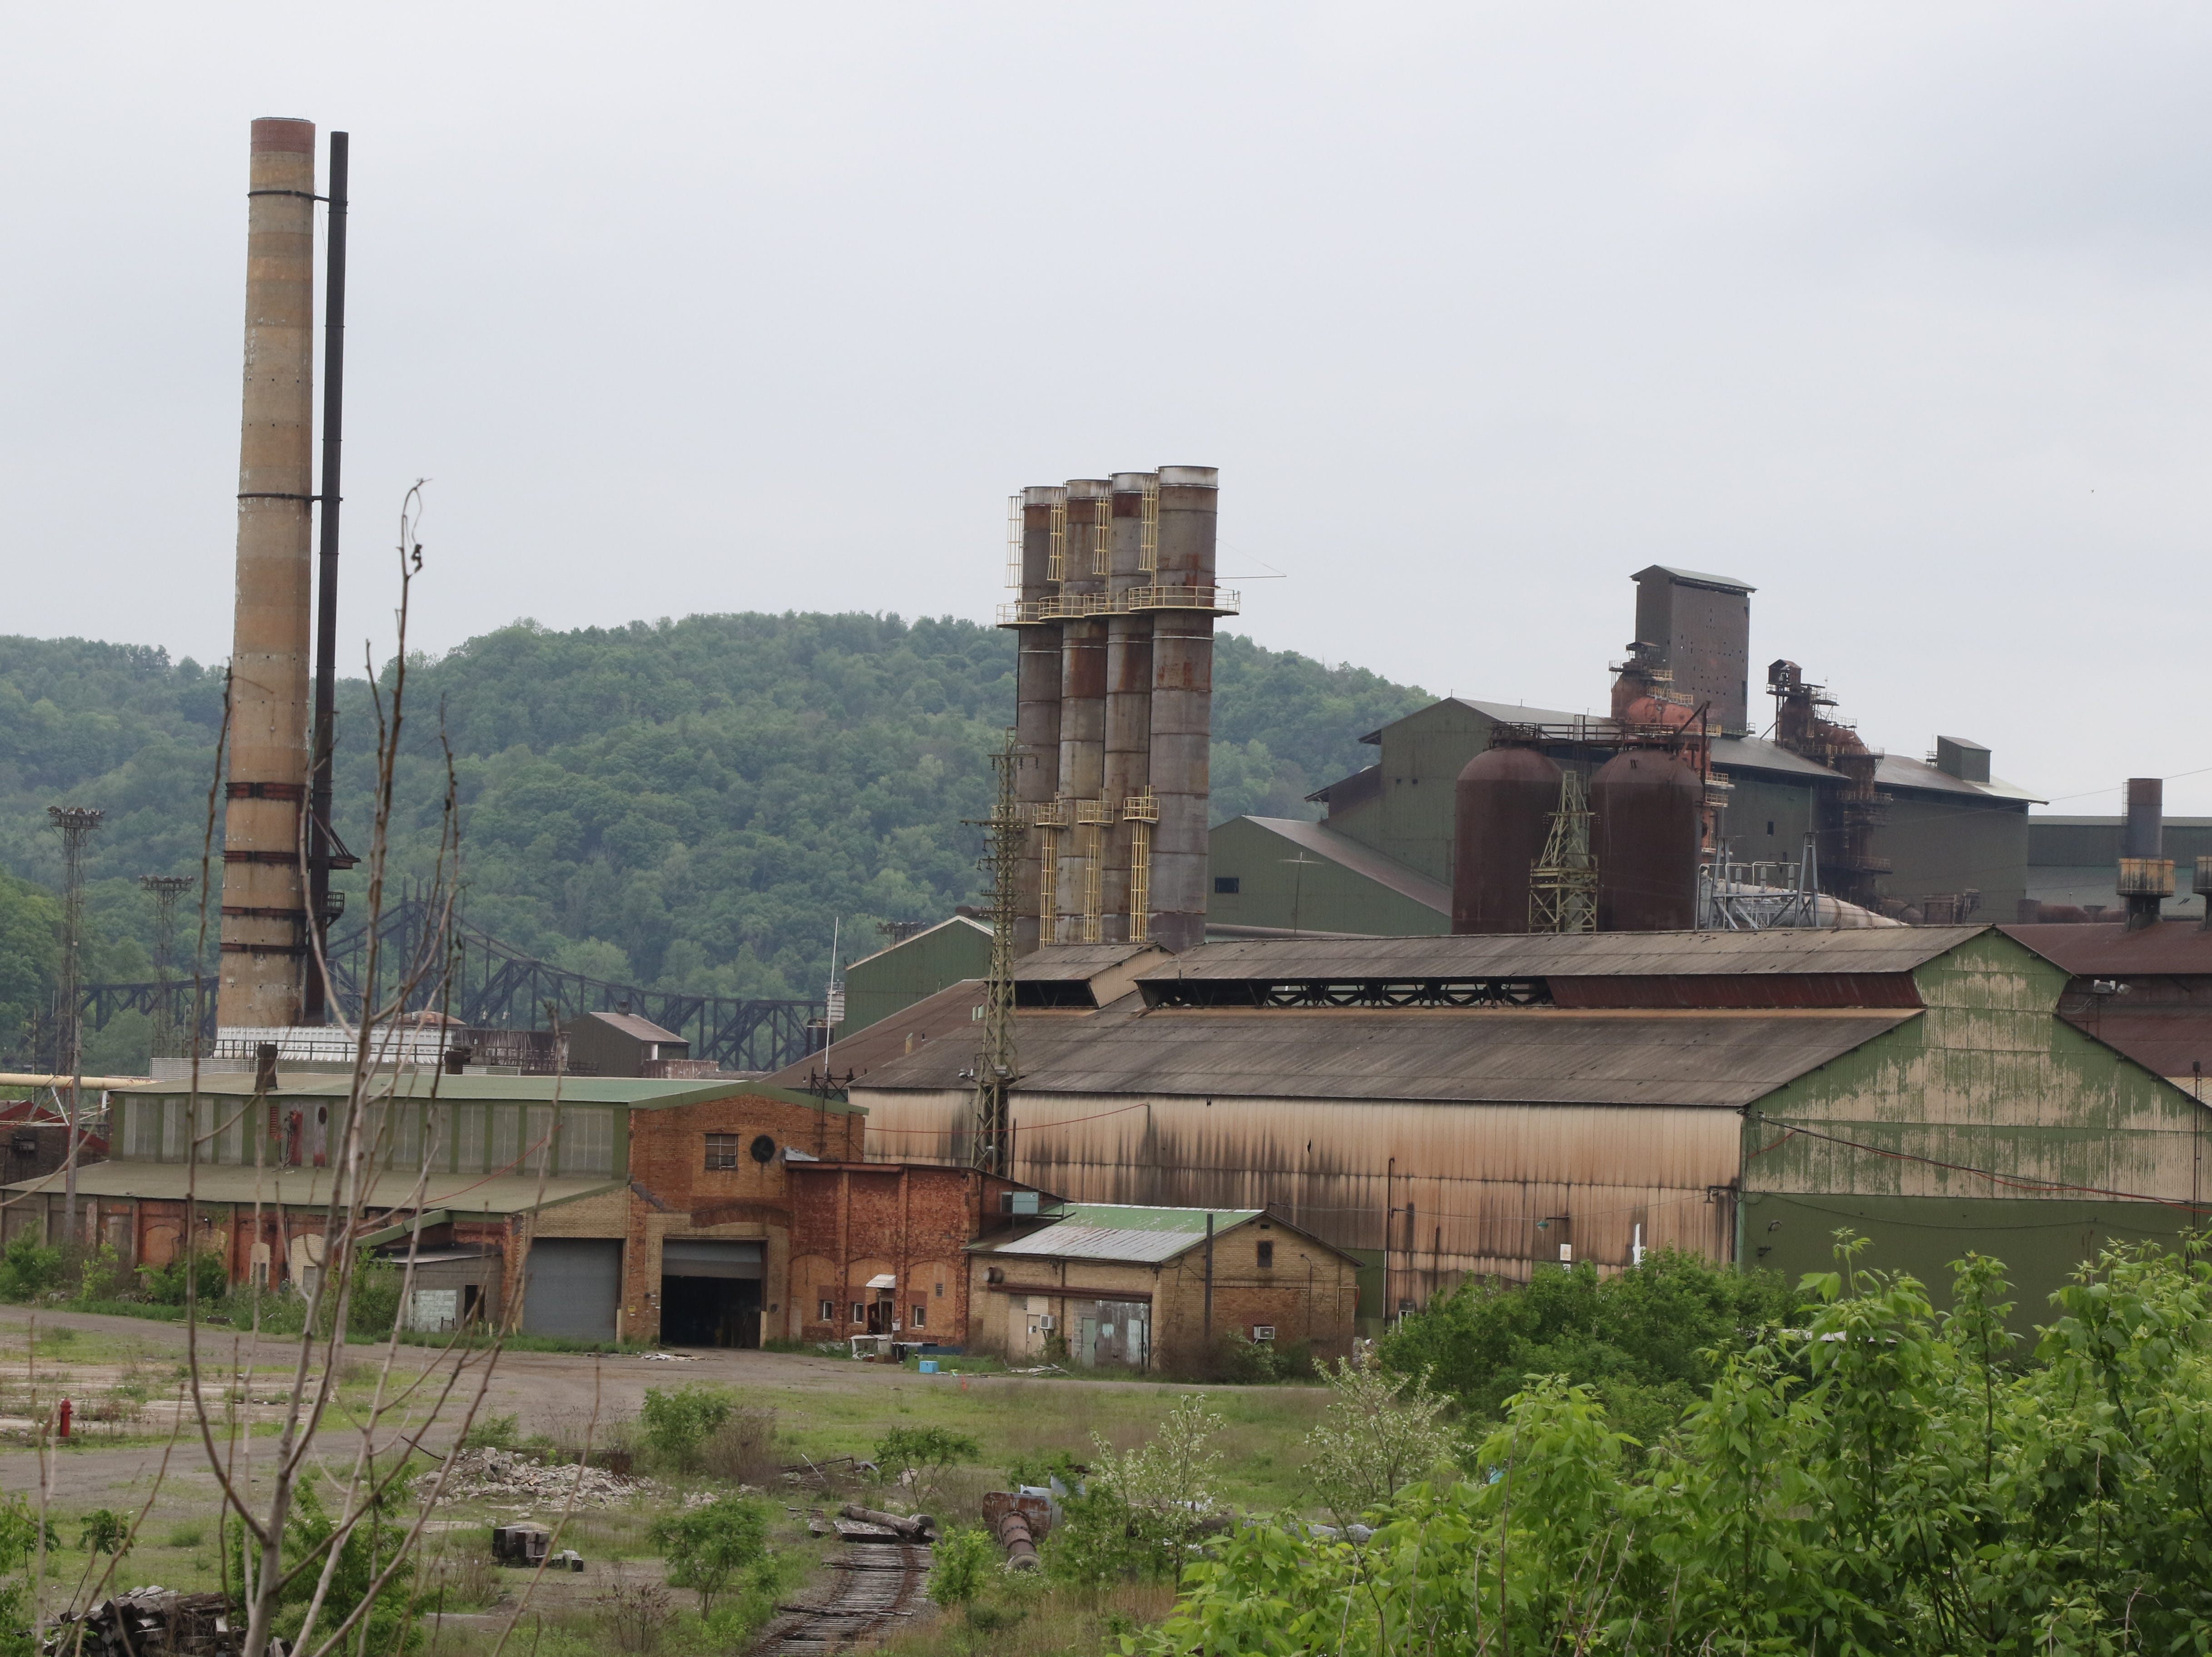 What is left of one of the remaining steel mills that is no longer in operation.